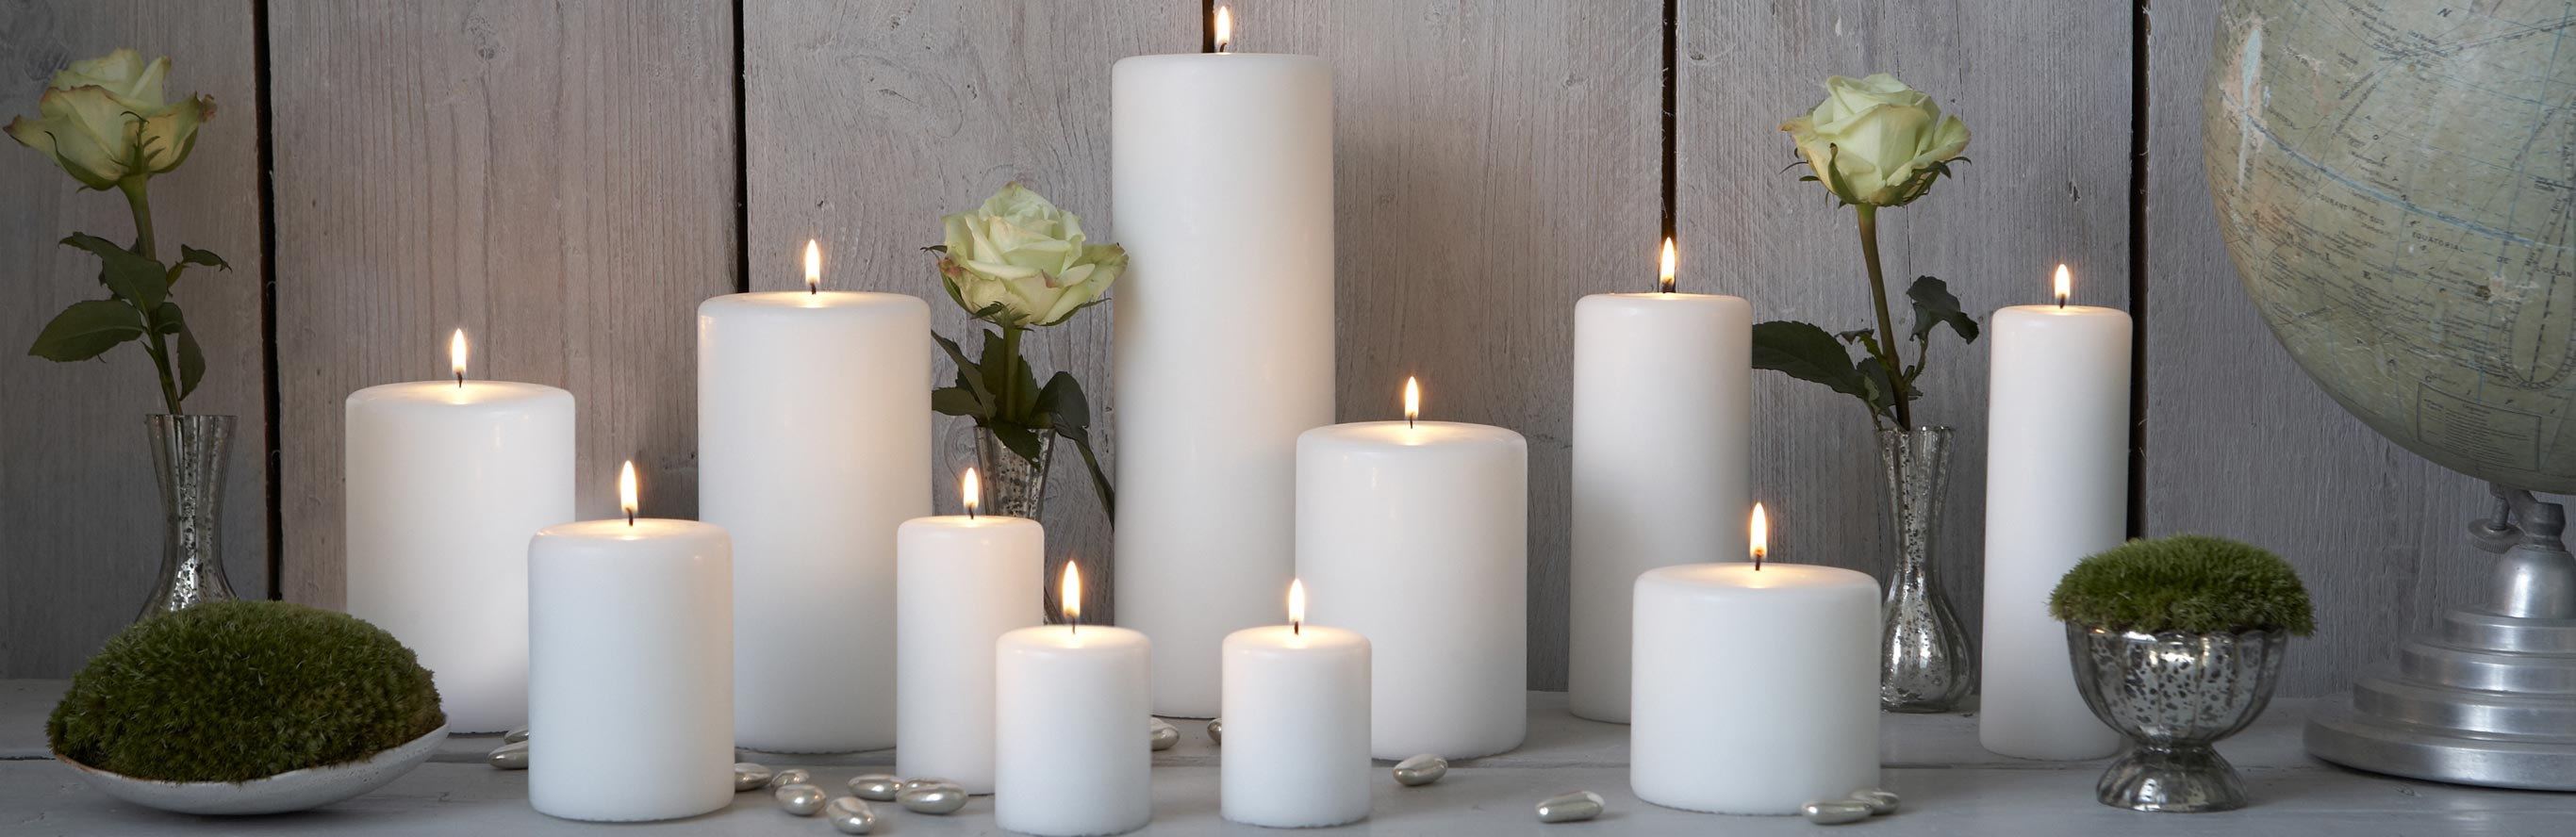 Nordic House  |  Stylish White Pillar Candles